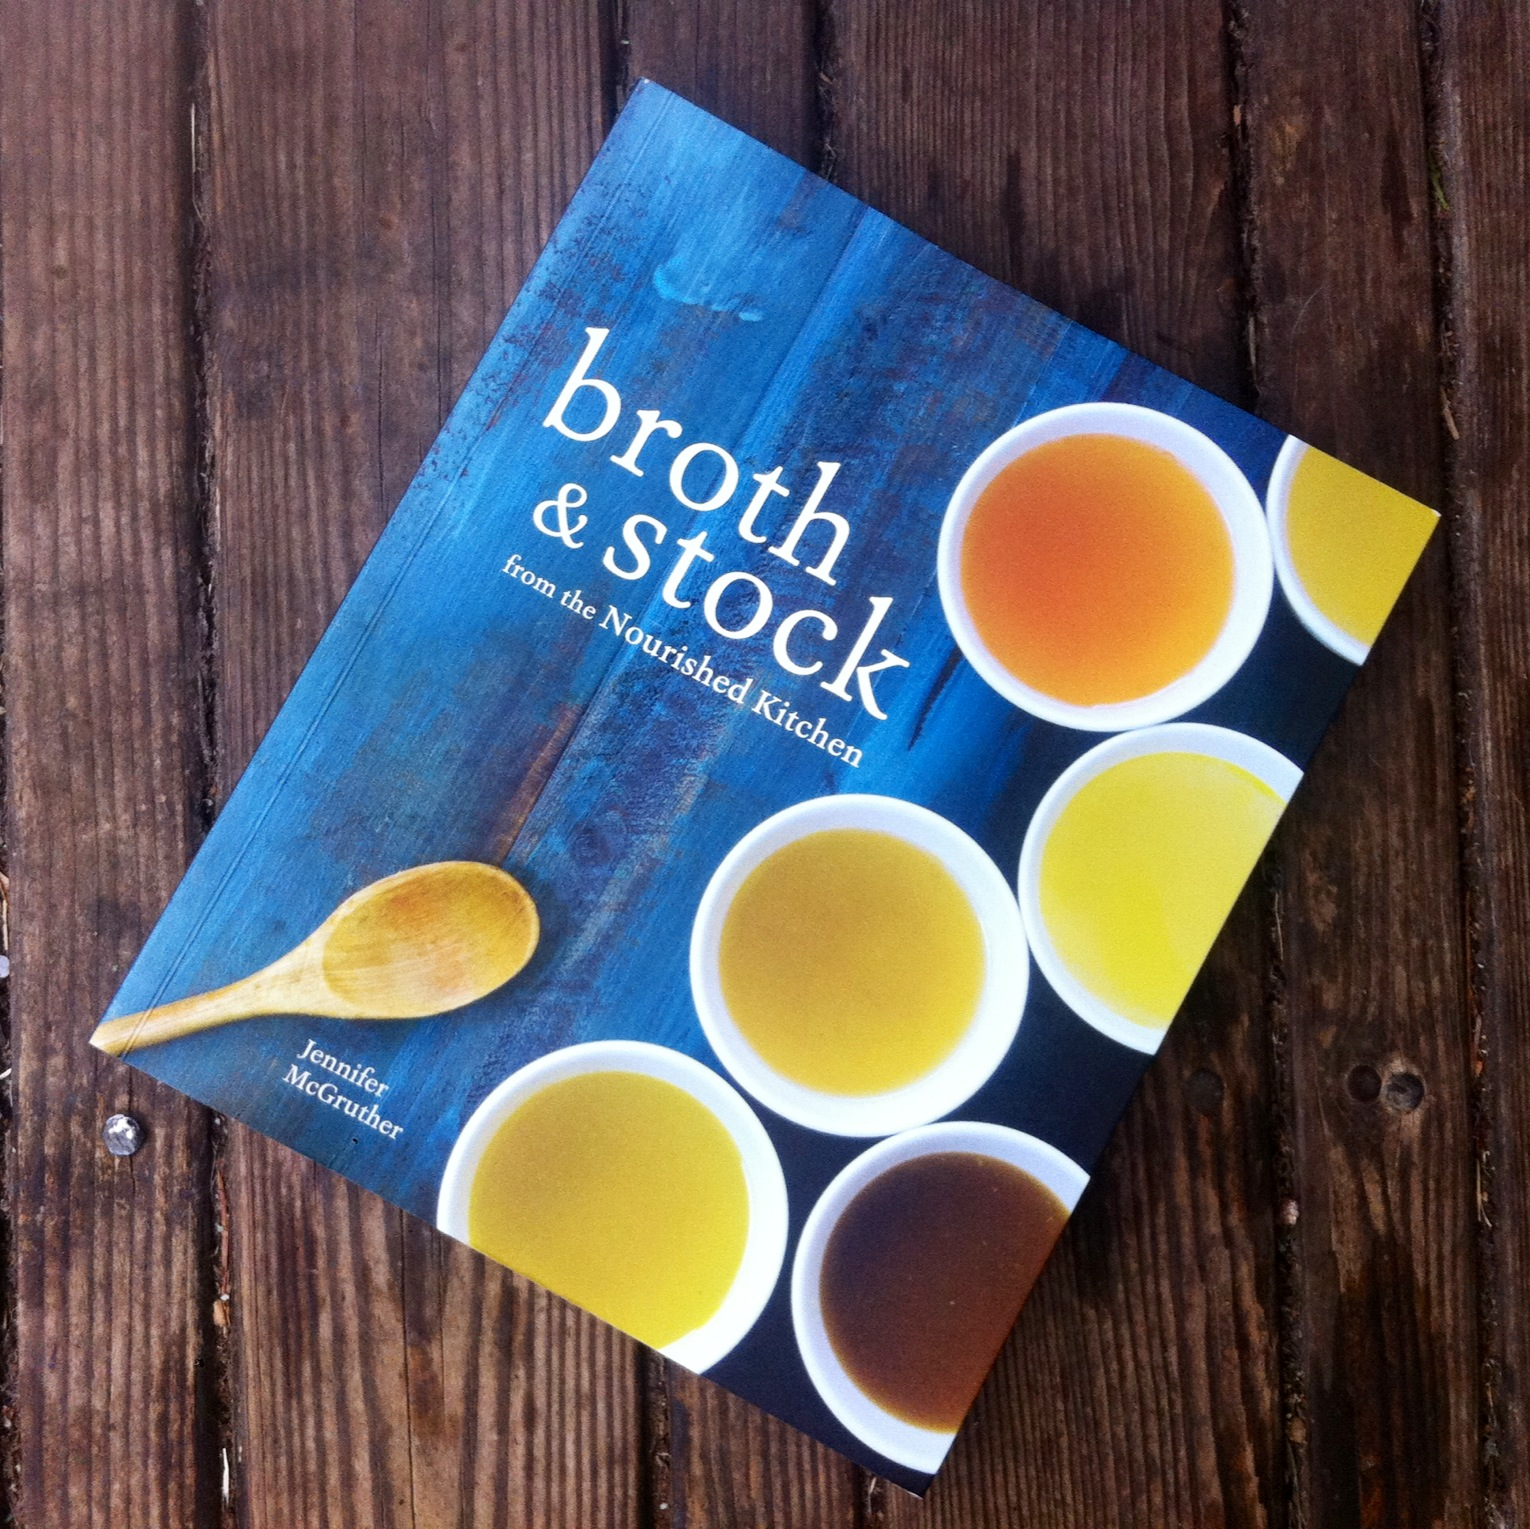 broth and stock from the nourished kitchen book review - Nourished Kitchen